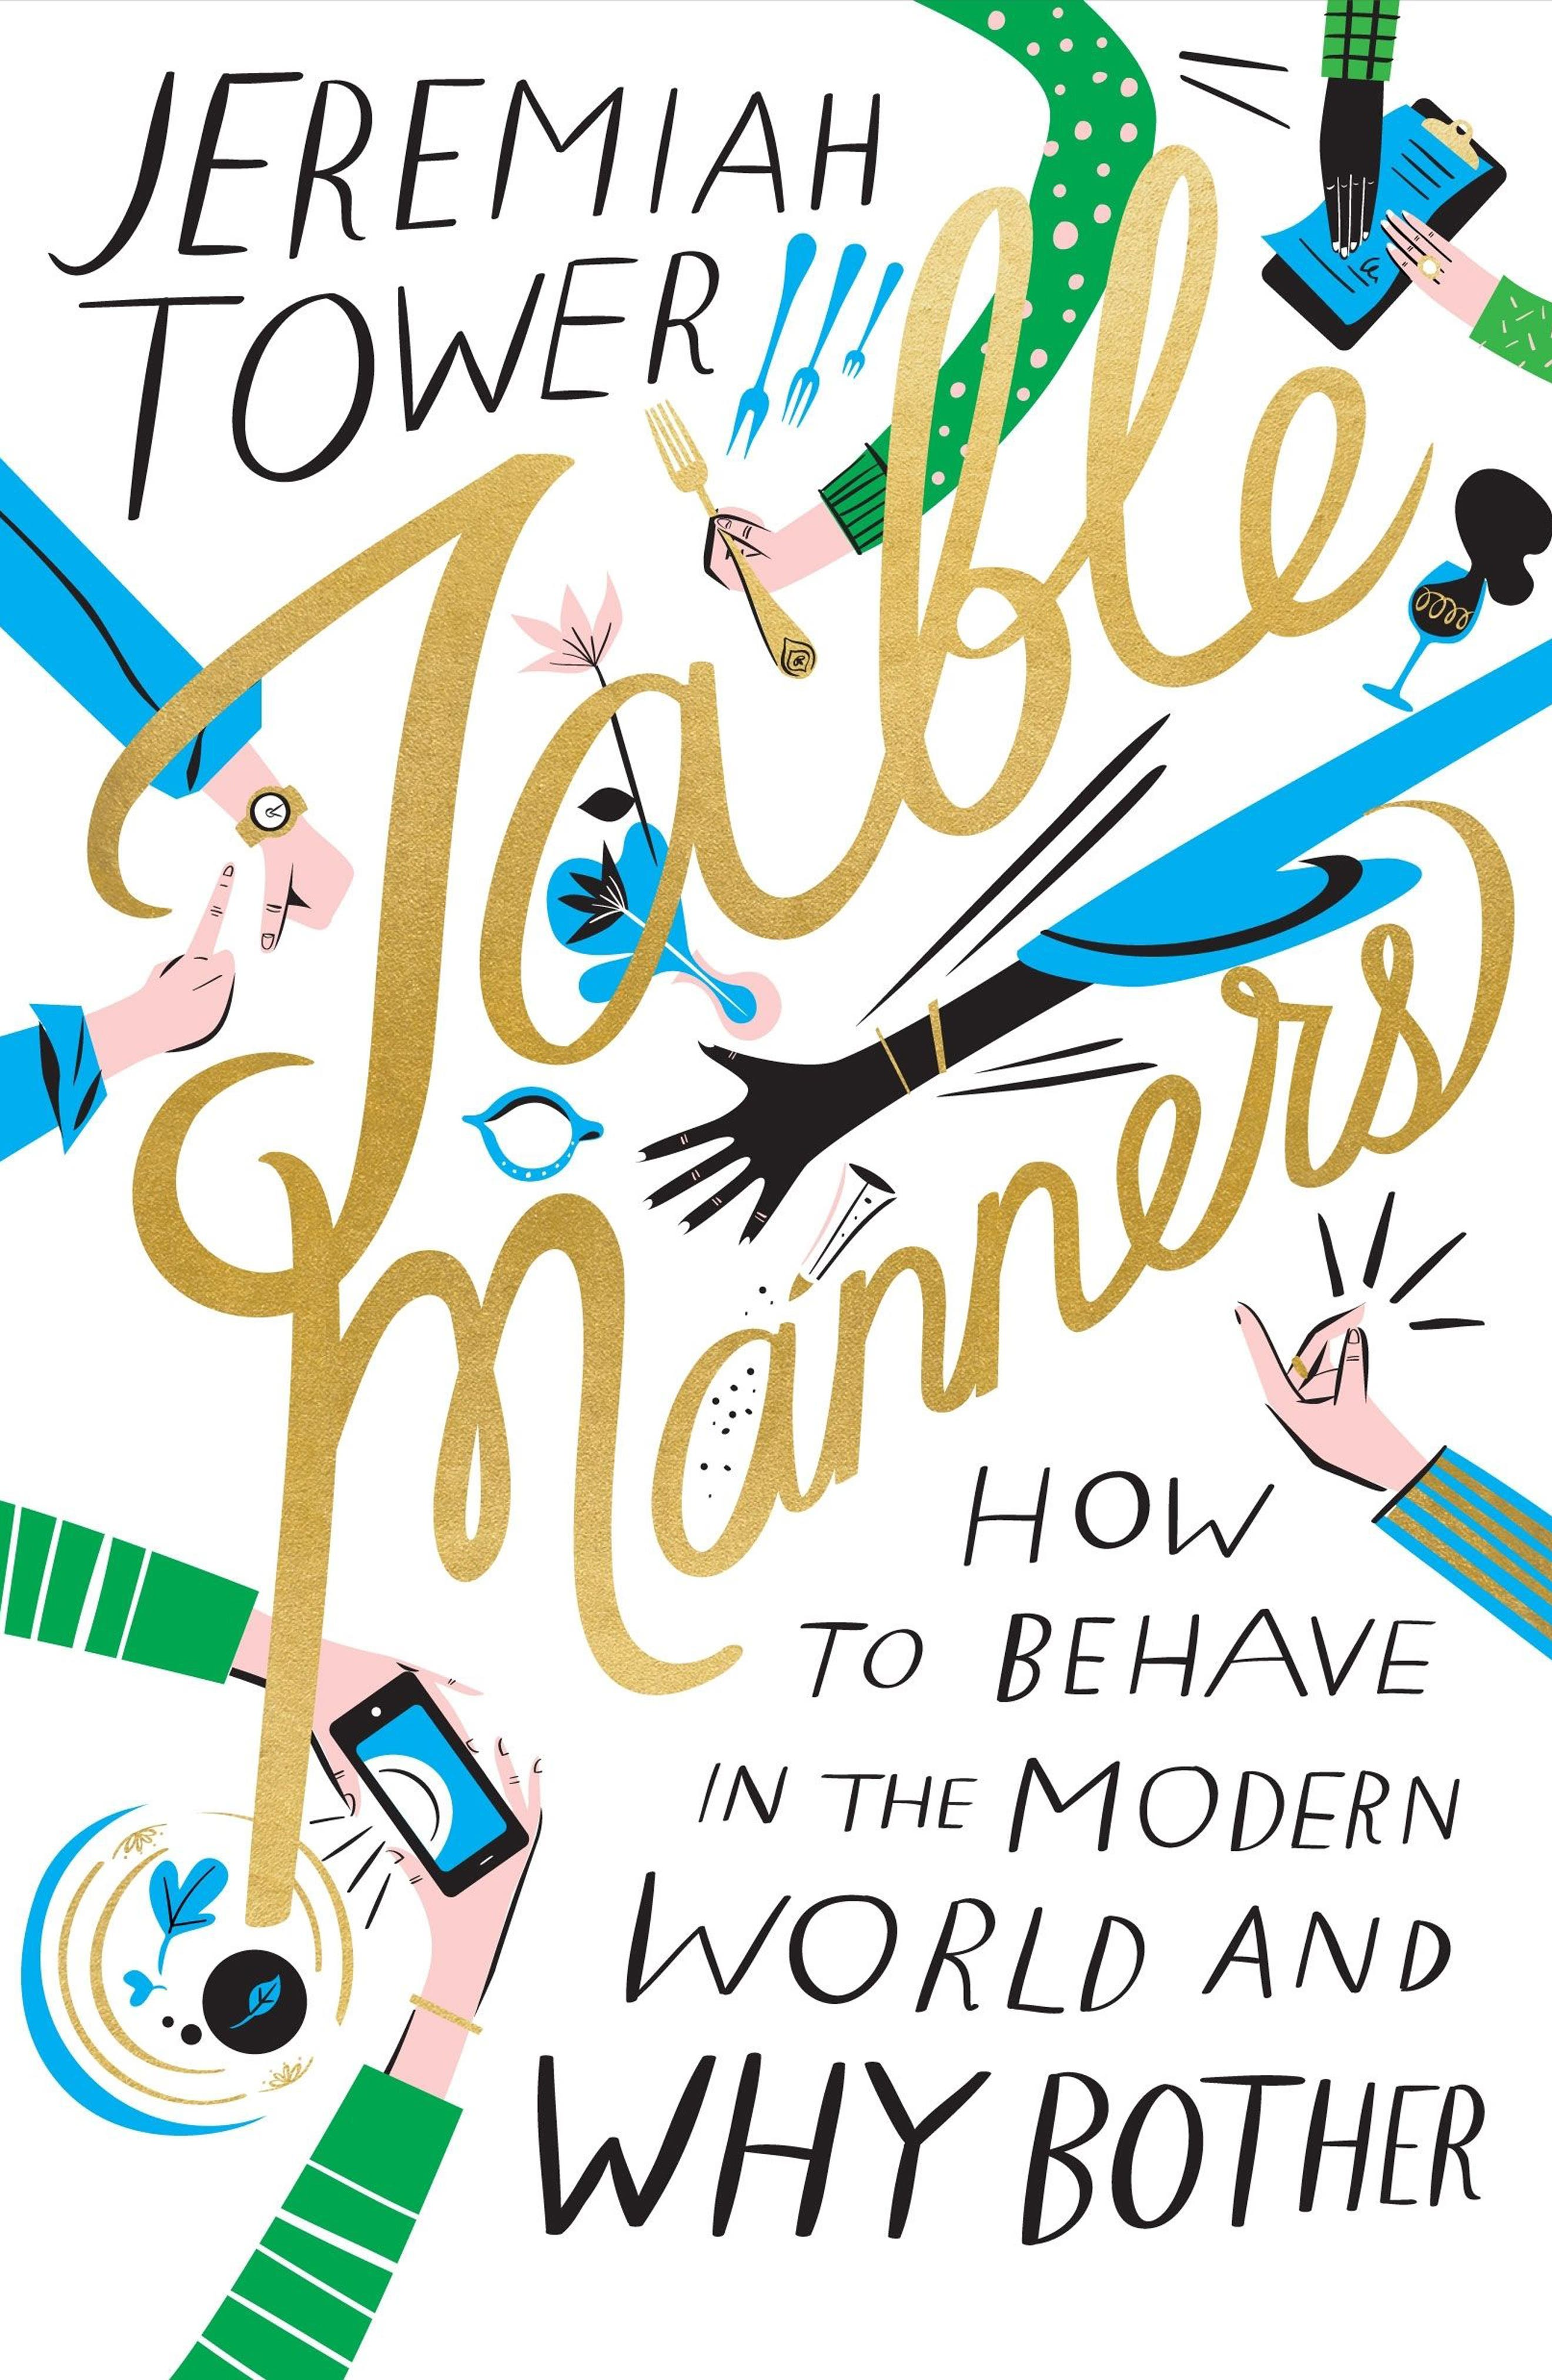 Table Manners: How to Behave in the Modern World and Why Bother Book